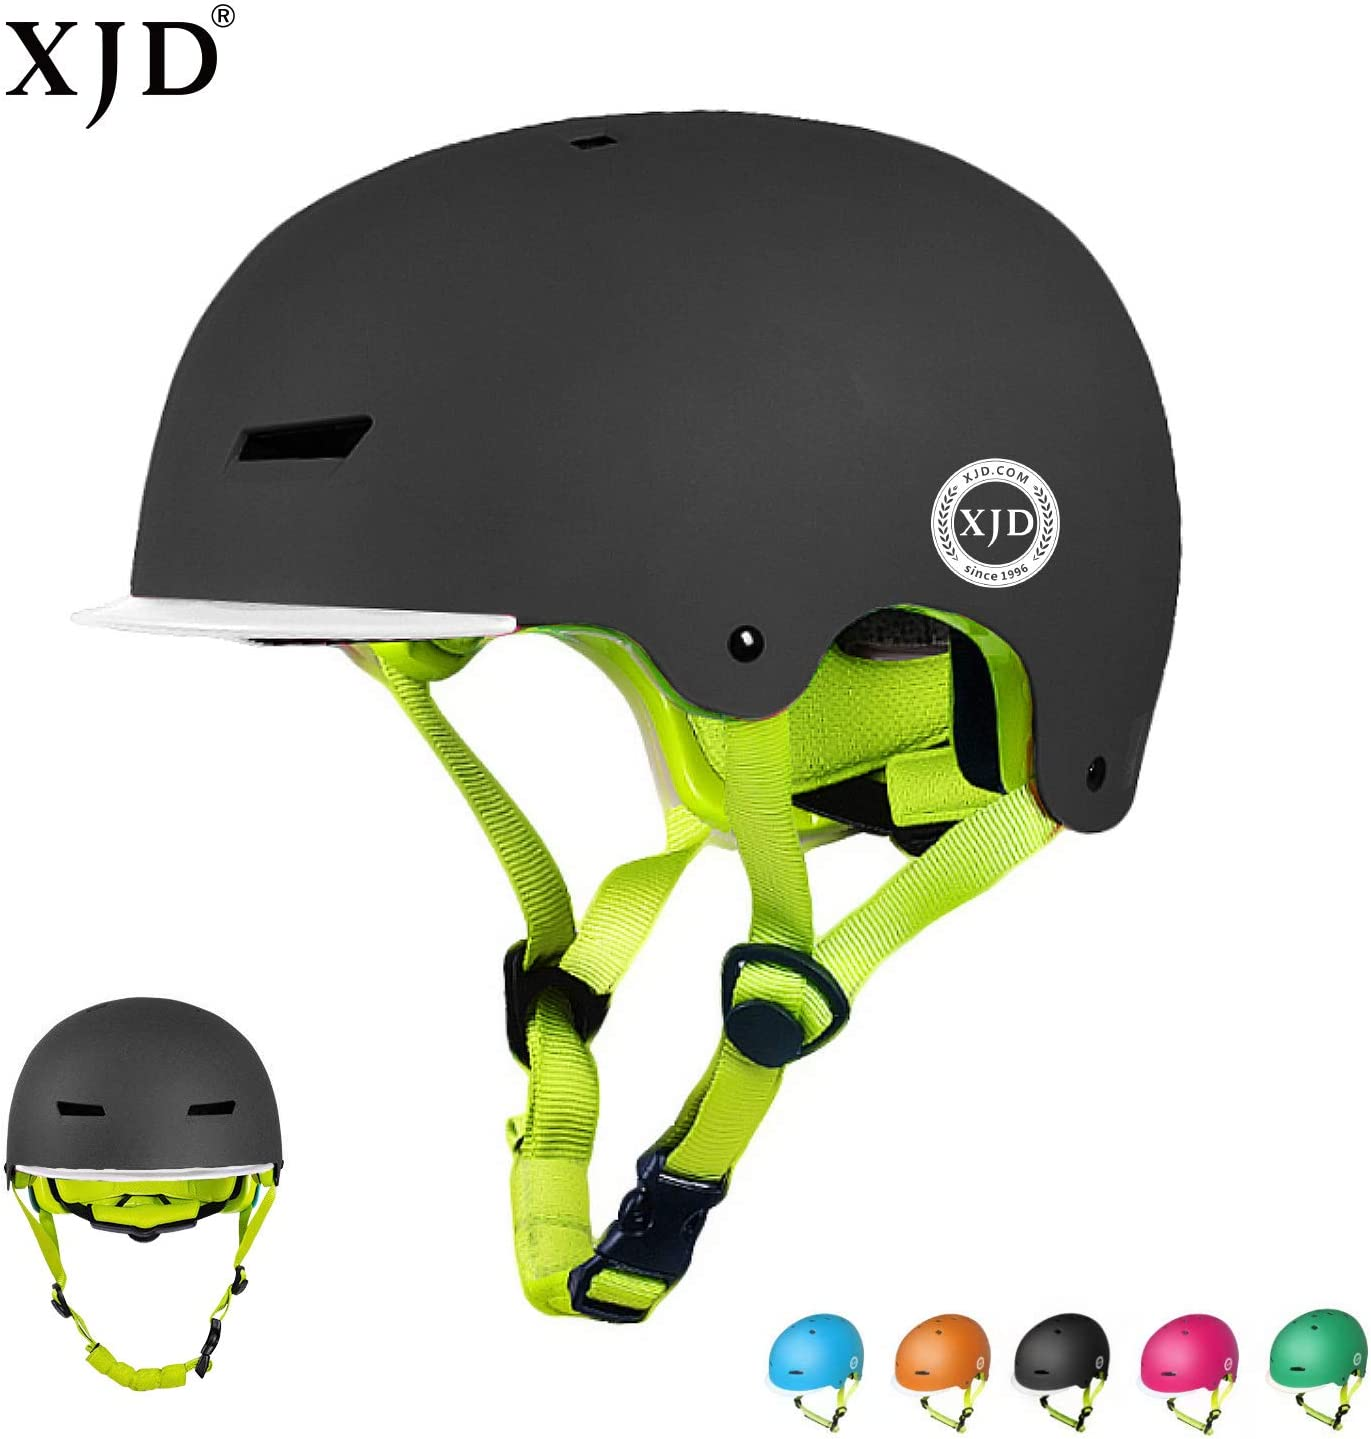 XJD Toddler Helmet Kids Bike Helmet Multi-Sport Cycling Helmet CPSC Certified Adjustable Child Helmet Kids Bicycle Helmet Boys Girls Safety Skateboard Skating Scooter Youth Helmet Ages 3-13 Years Old